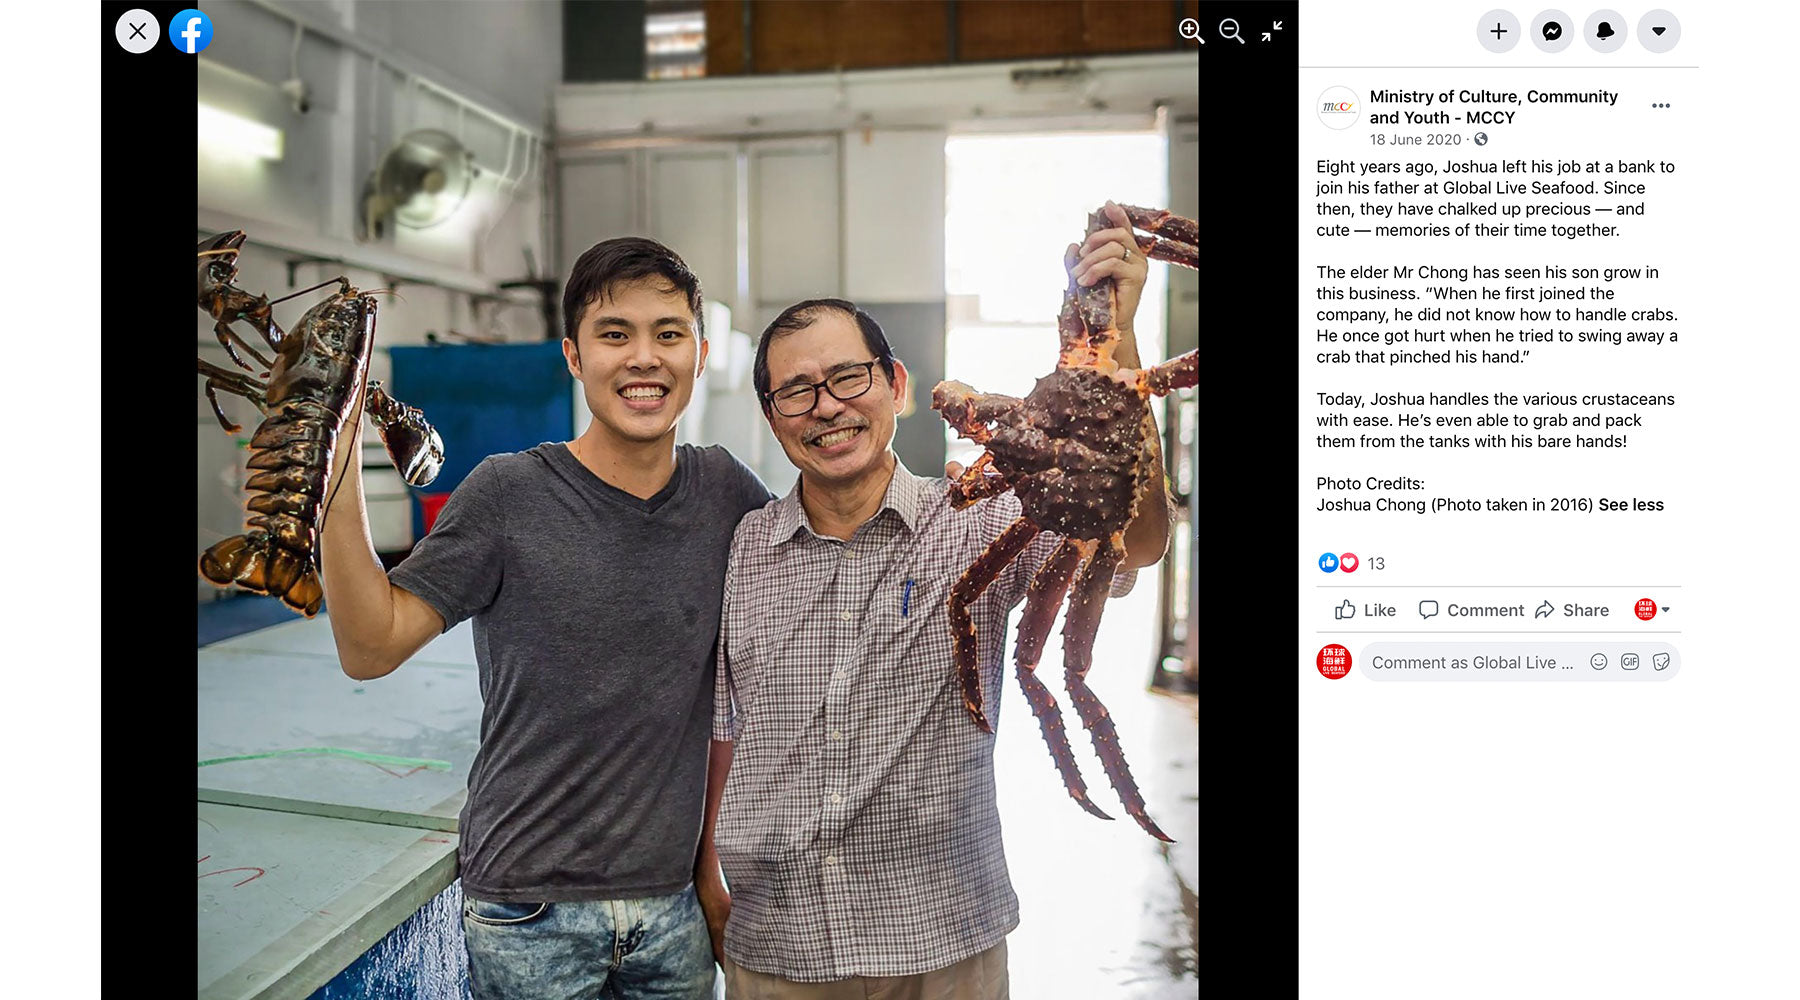 global live seafood featured in MCCYSG facebook